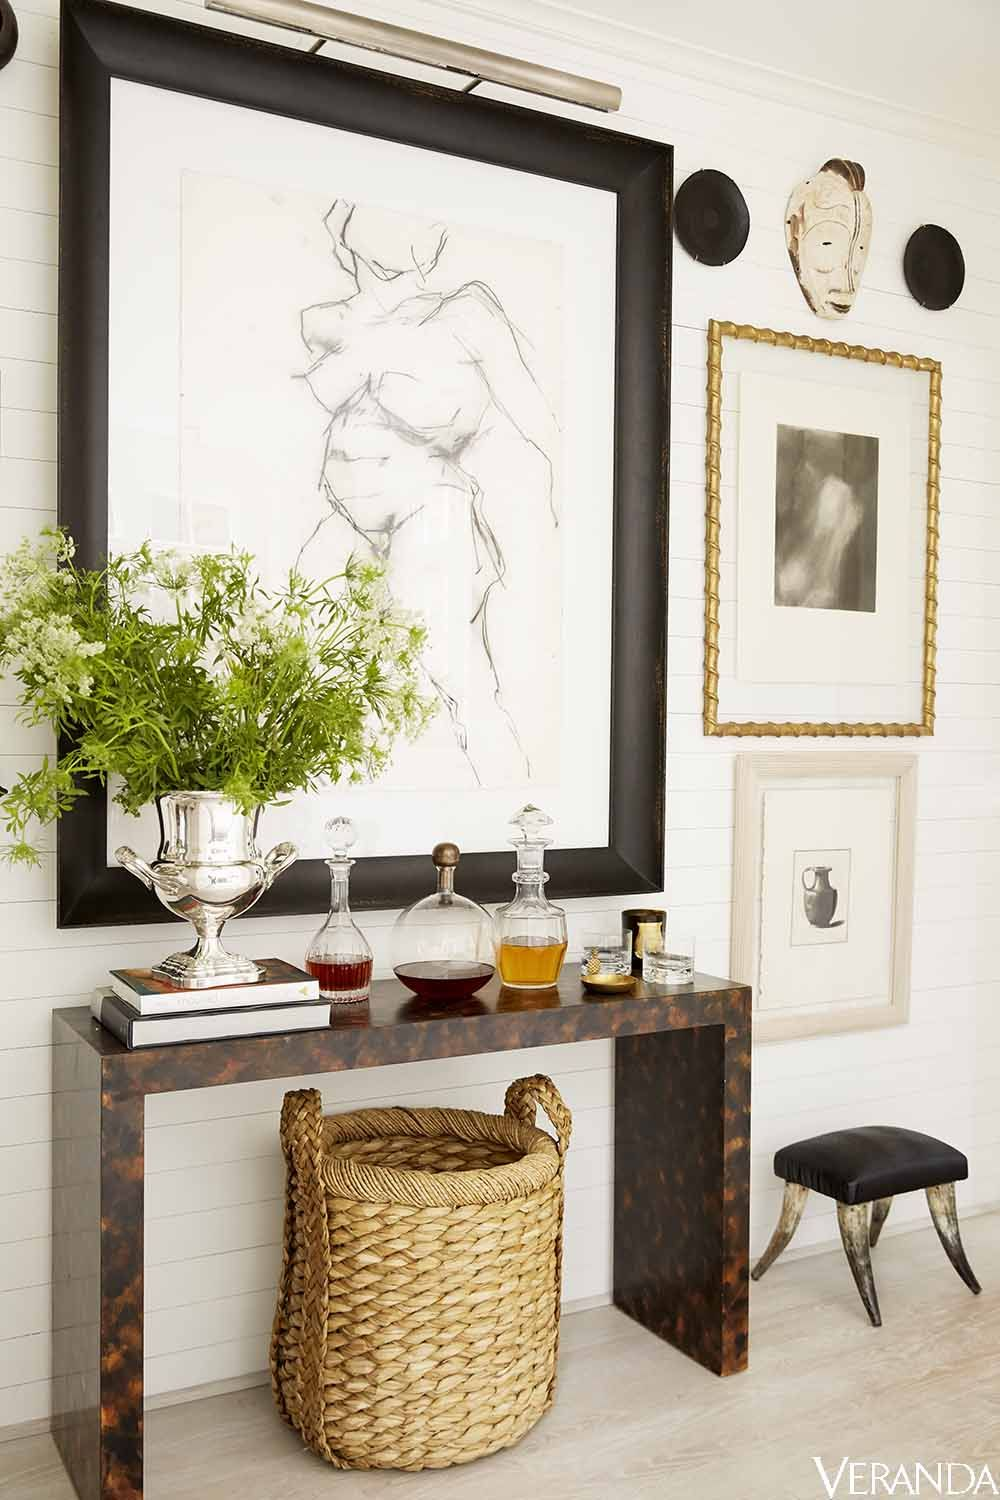 How To Decorate An Entryway - Beautiful Entryway Photos